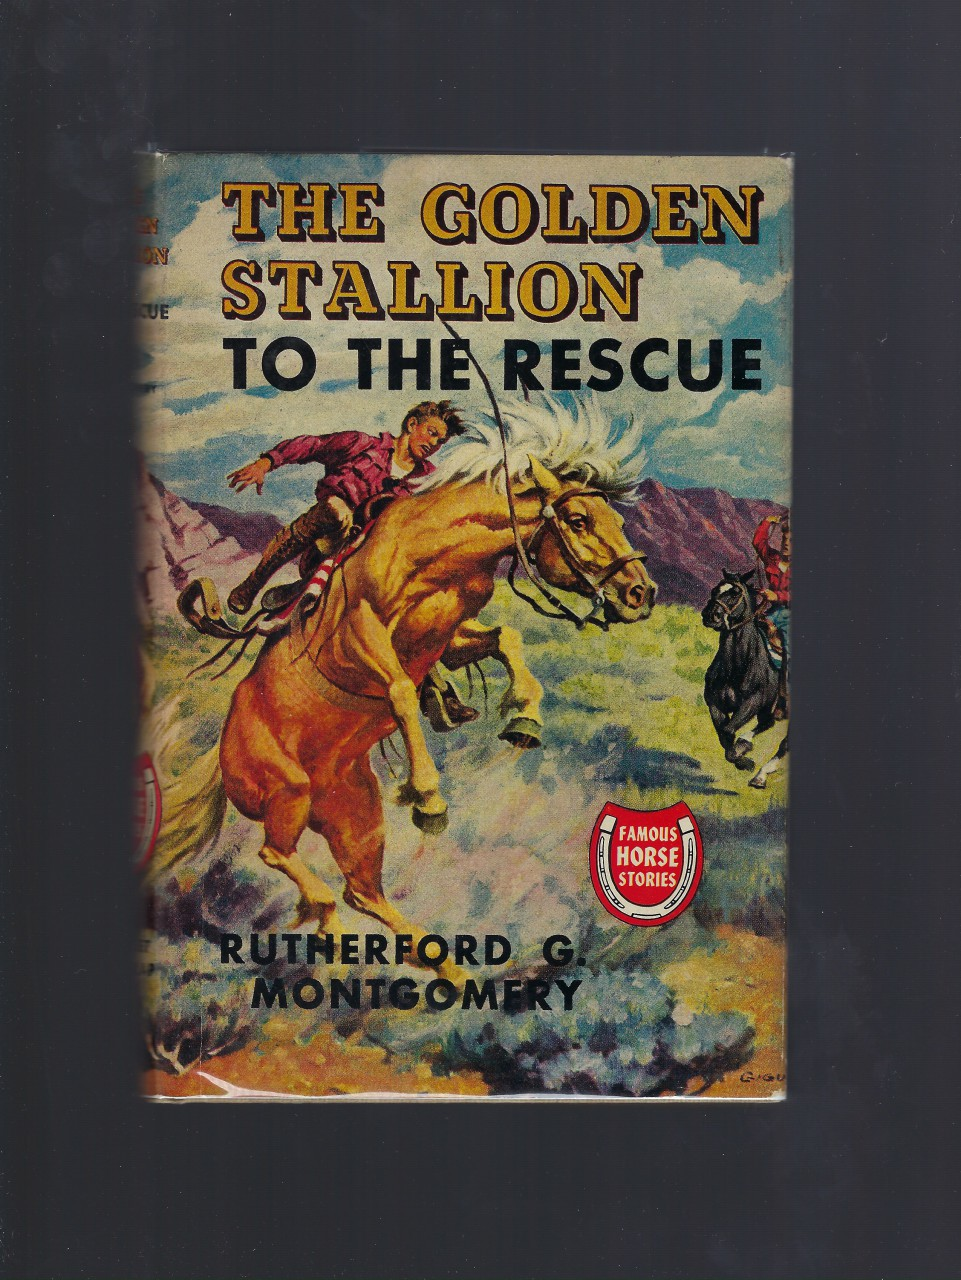 Golden Stallion to the Rescue HB/DJ (Famous Horse Stories) HB/DJ, Montgomery, Rutherford G.